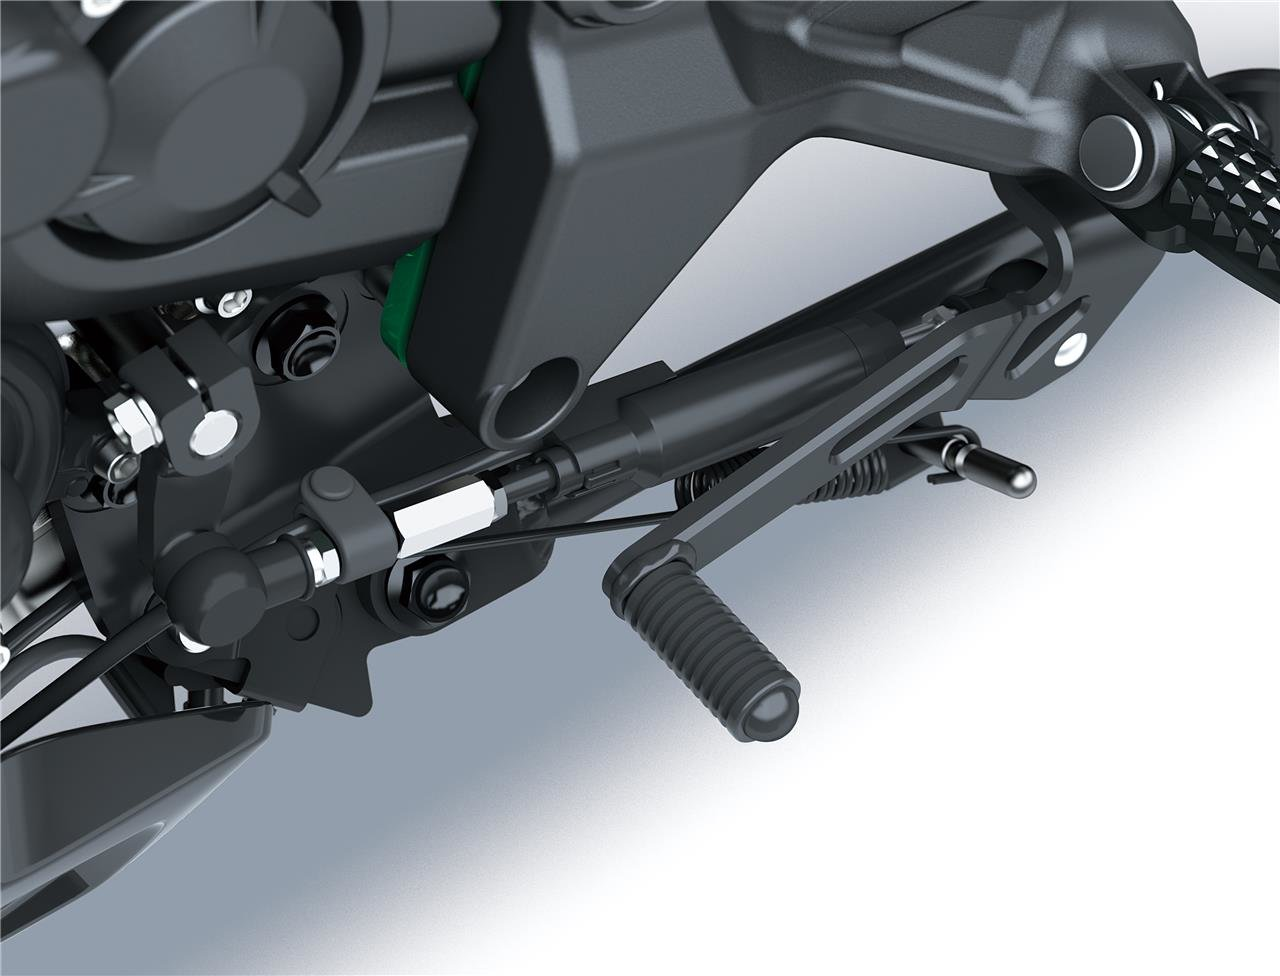 New 2020 Kawasaki Z H2 Supercharged Naked Z1000 For Sale (picture 6 of 6)